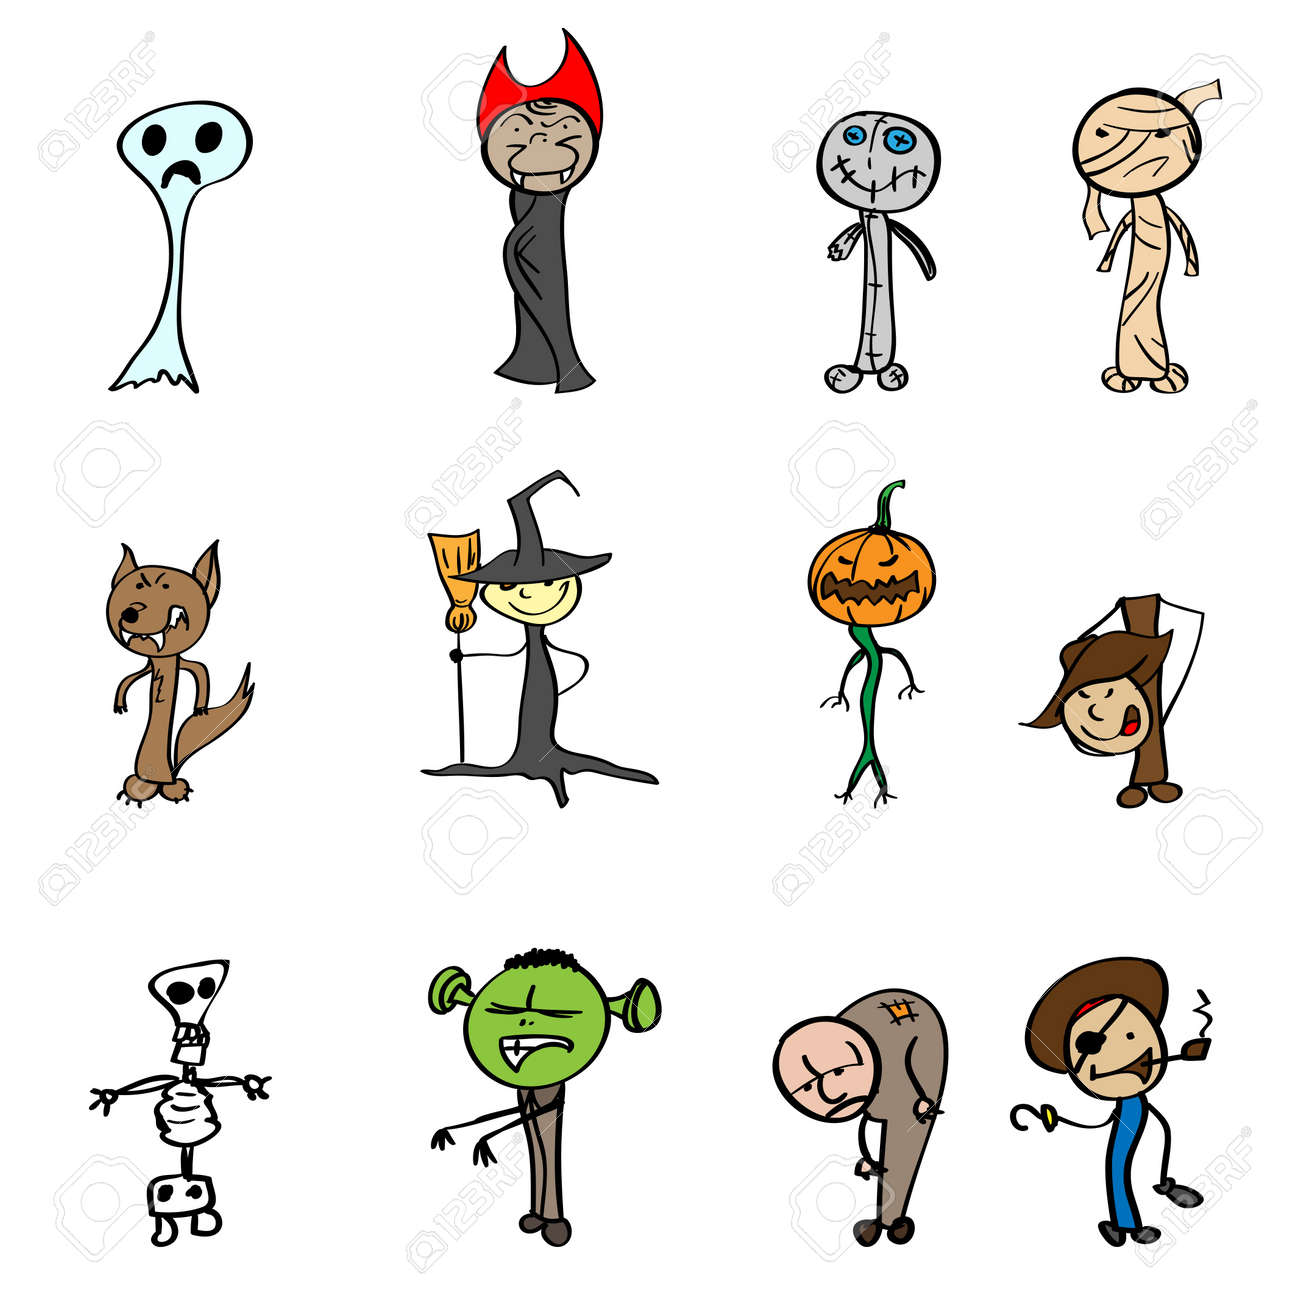 children's drawings for halloween. vector illustration. royalty free